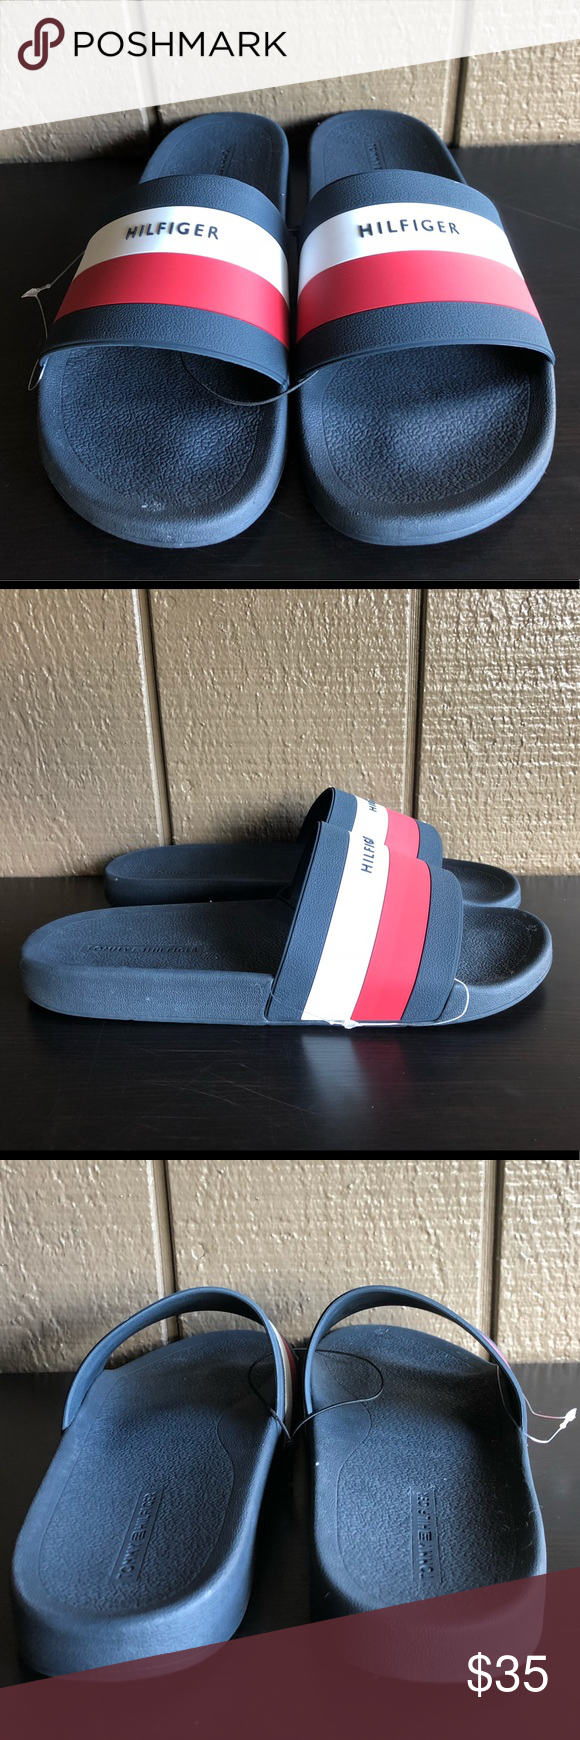 ef850667a7a Tommy Hilfiger Men s Sandals EARTHY Blue Red Tommy Hilfiger Men s Sandals Slides  EARTHY Block Logo